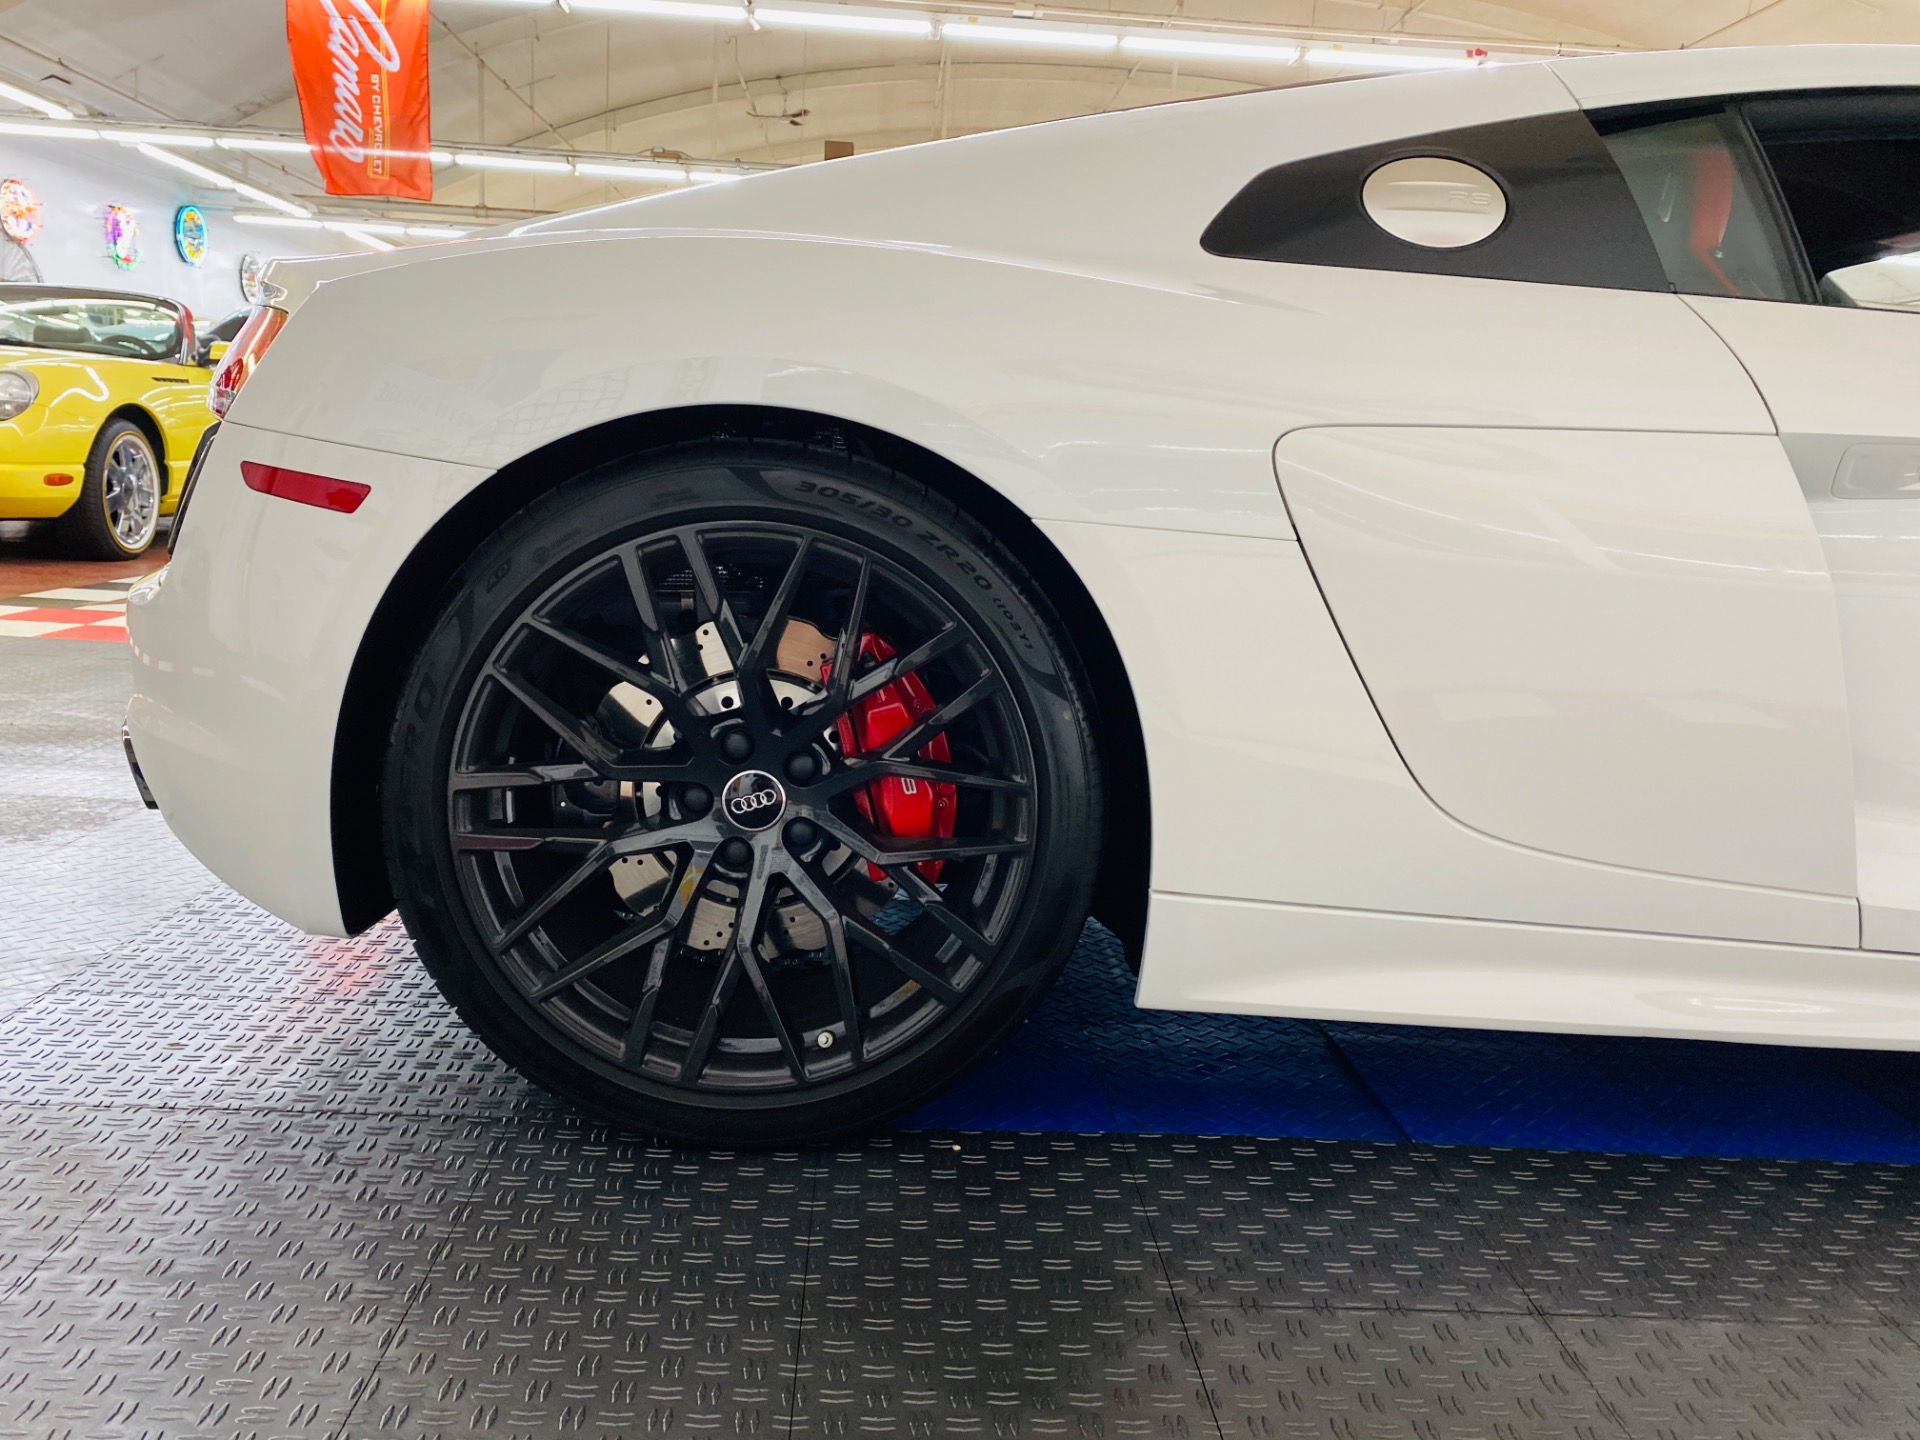 Used 2018 Audi R8 5.2 V10 RWS - SEE VIDEO | Mundelein, IL